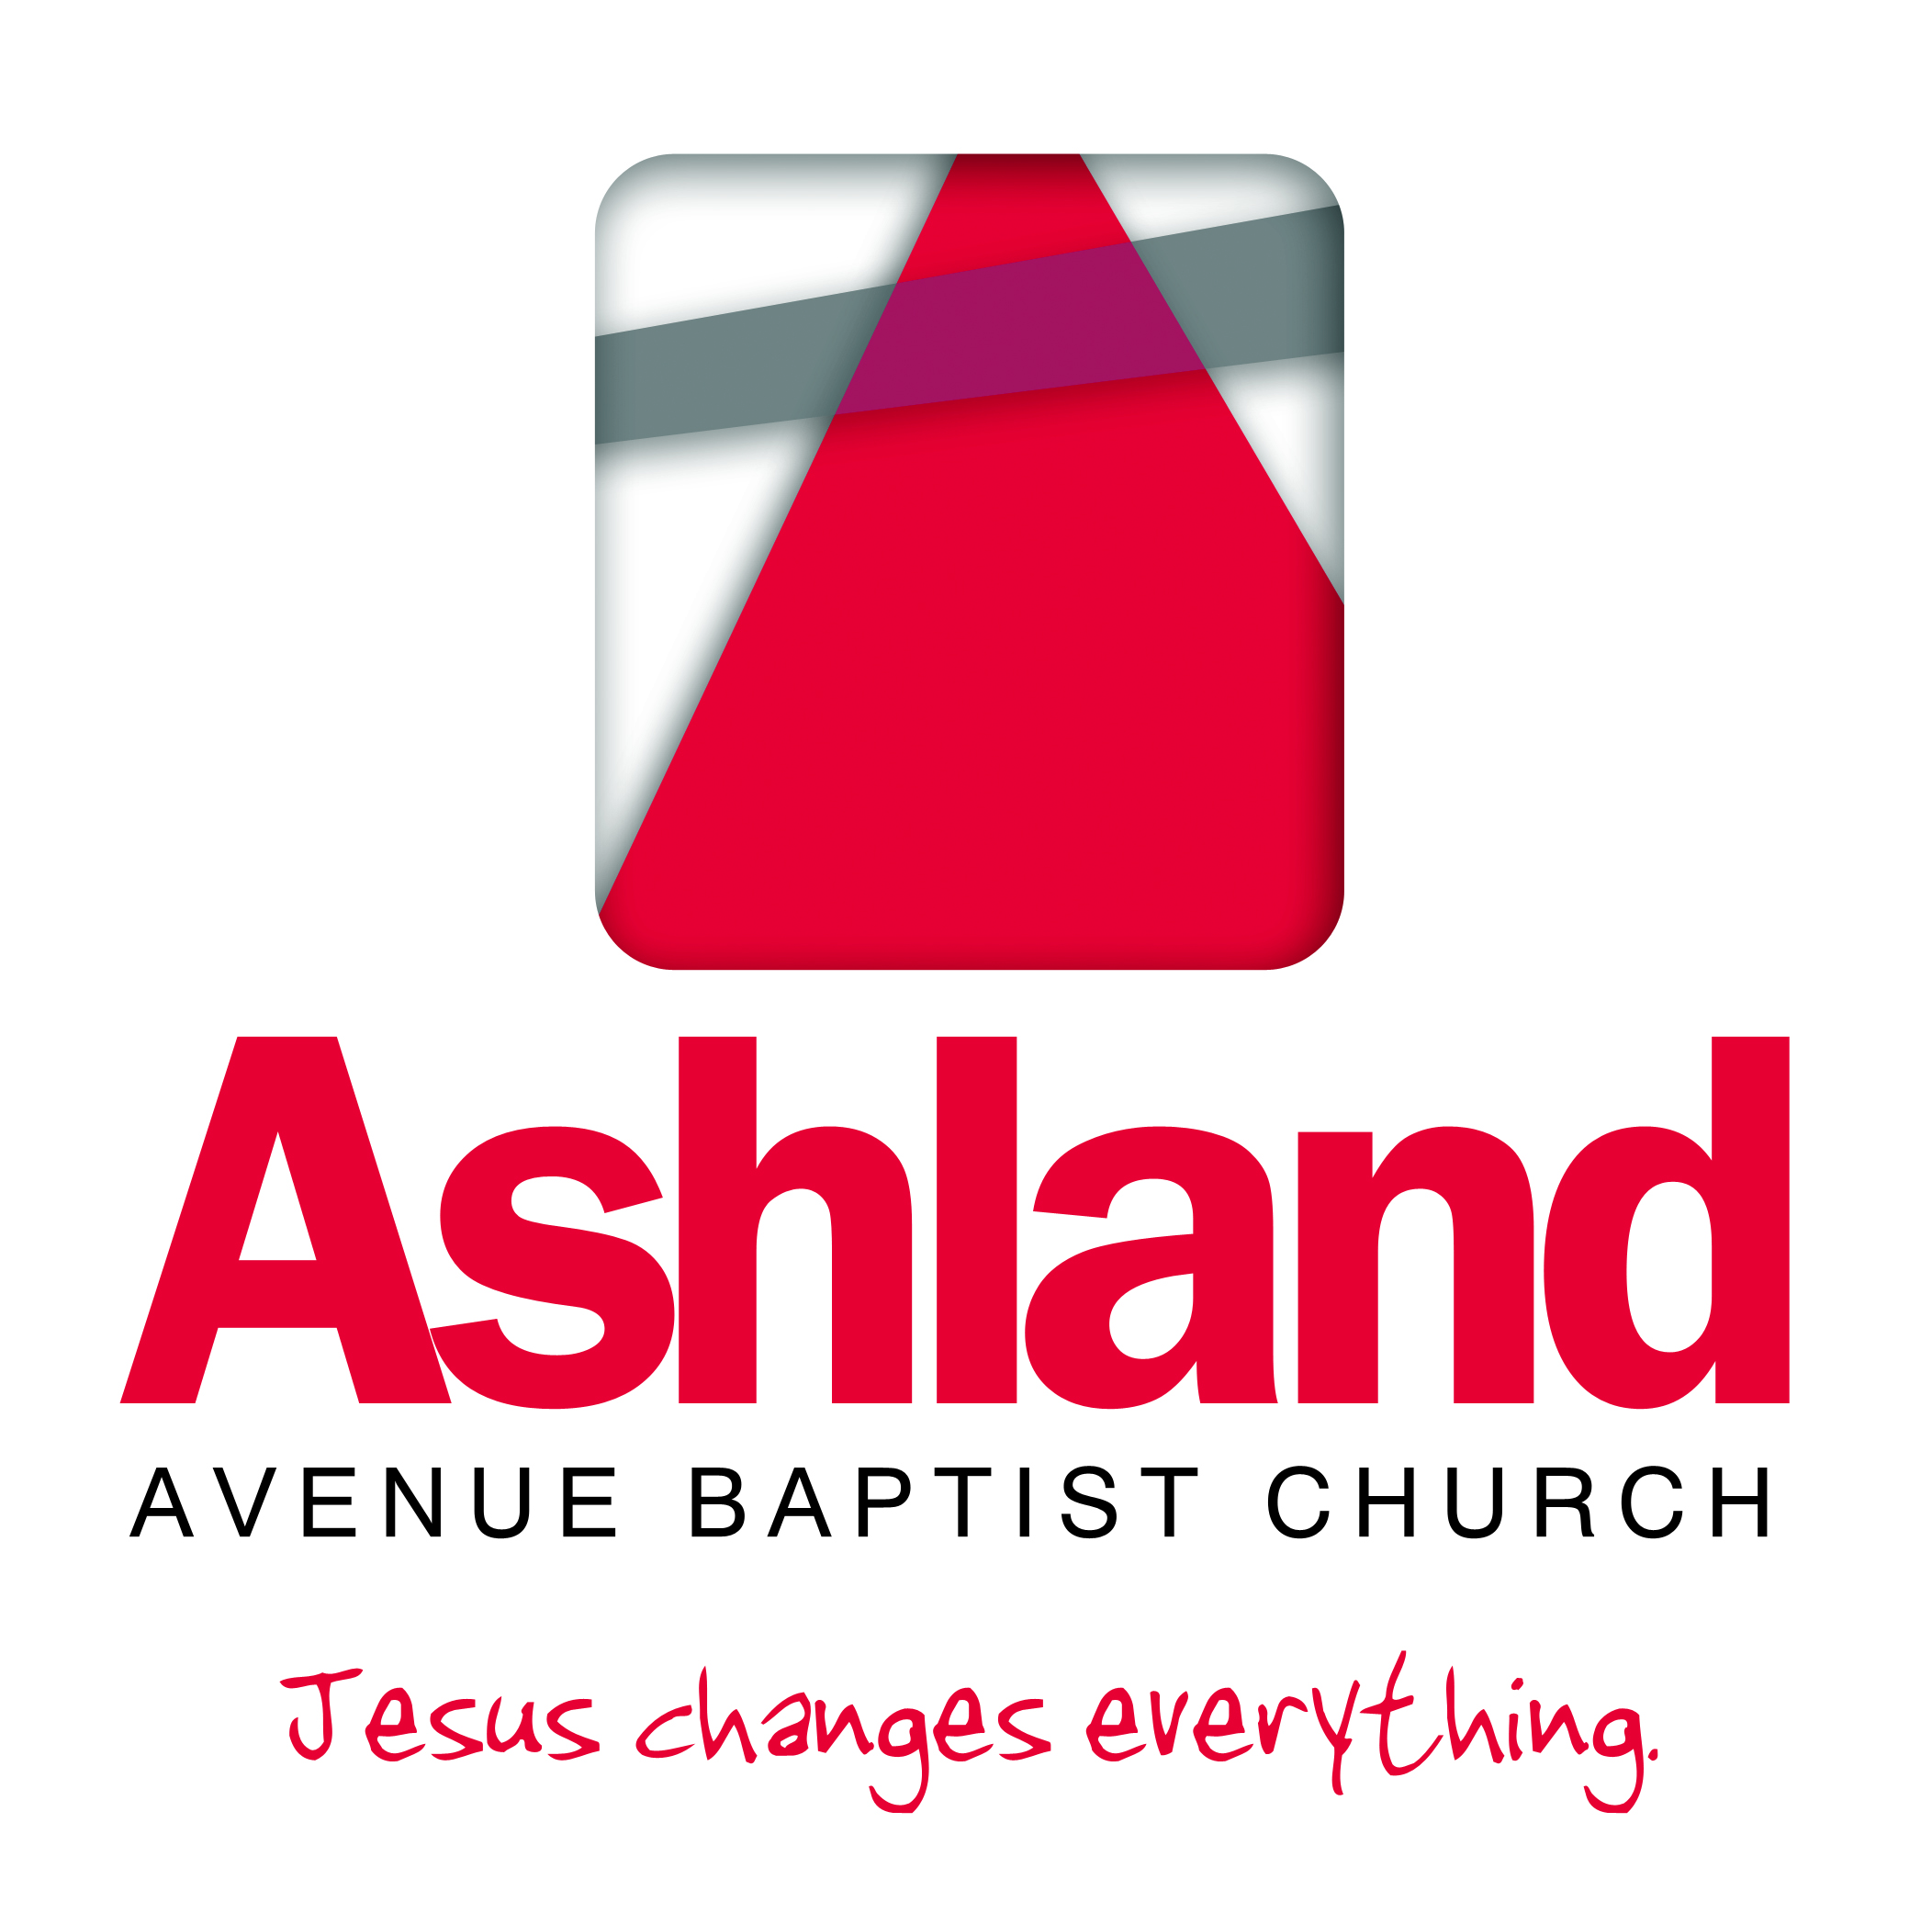 Ashland Avenue Baptist Church